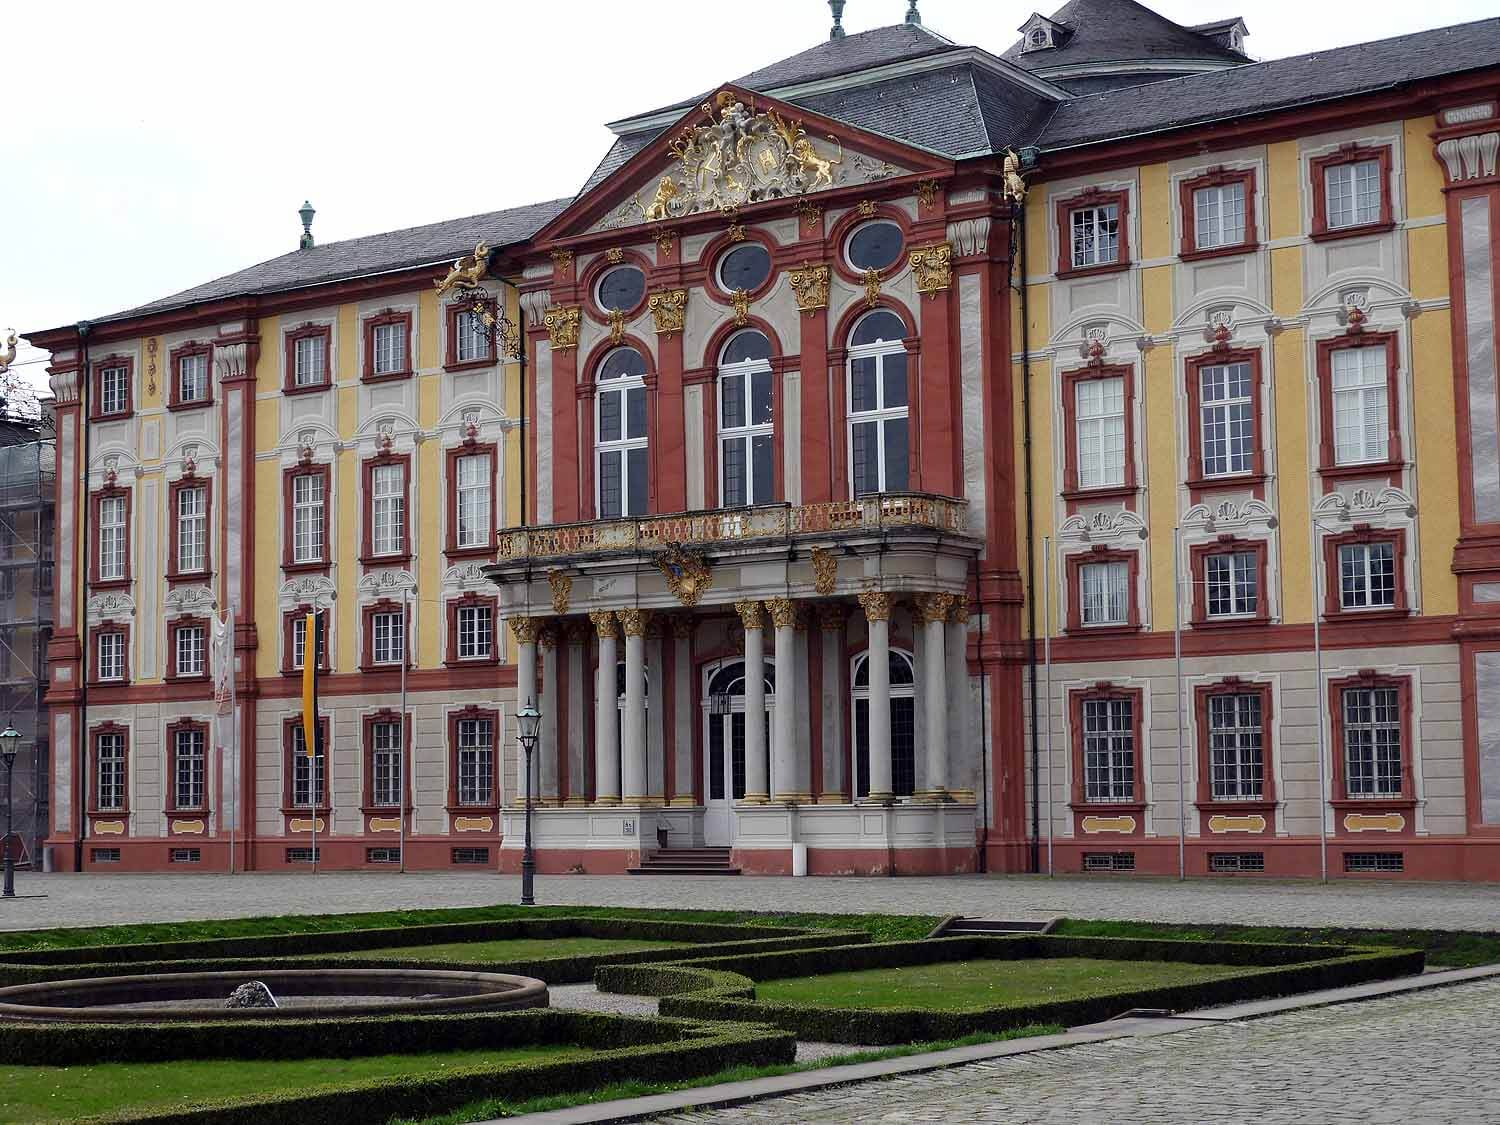 germany-bruchsal-schloss-destroyed-wwii-rebuilt.JPG